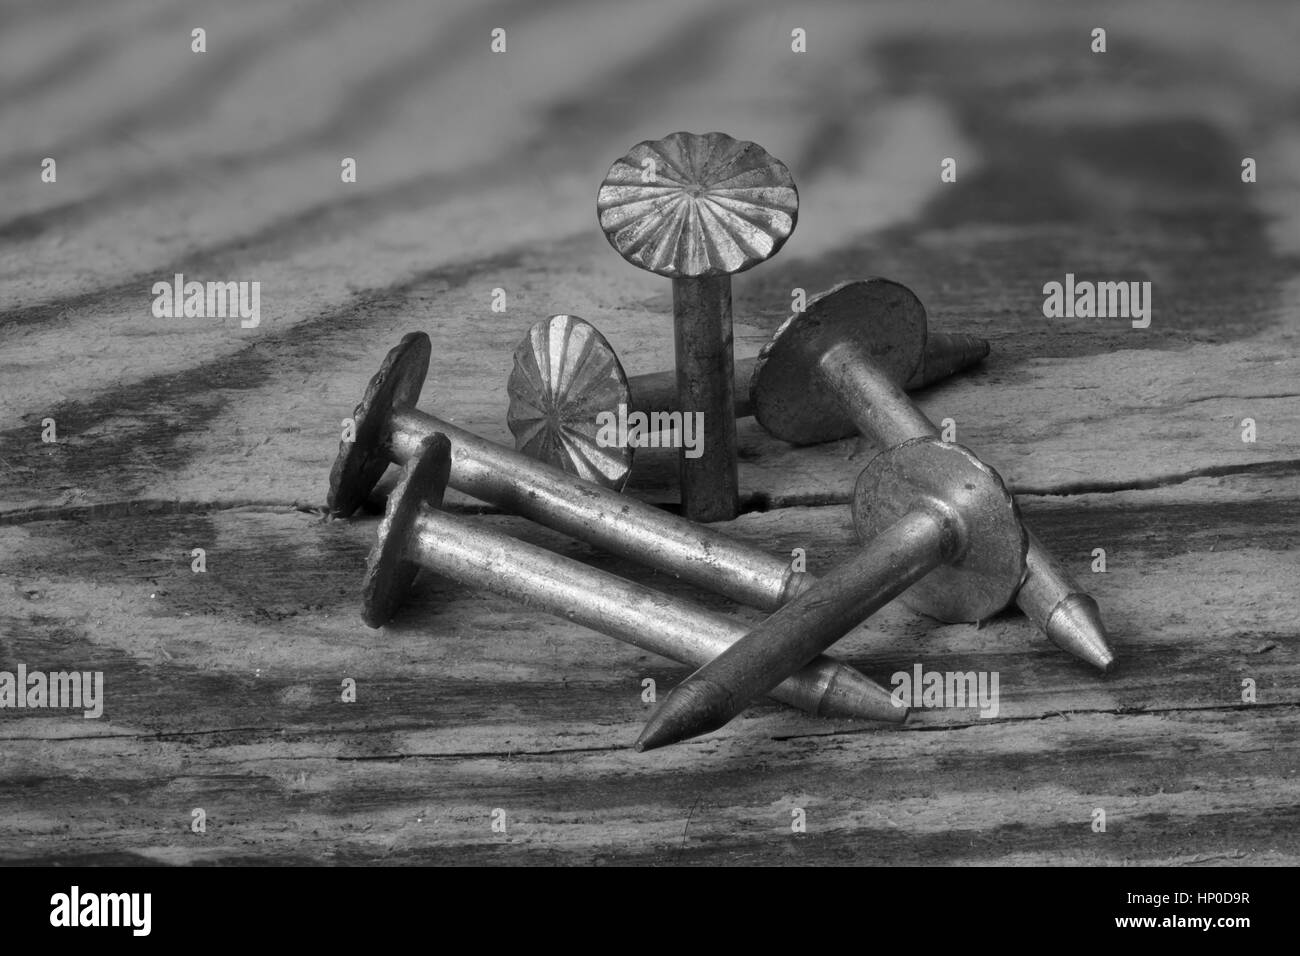 Upholstery sharp nails on a wooden surface board - Stock Image